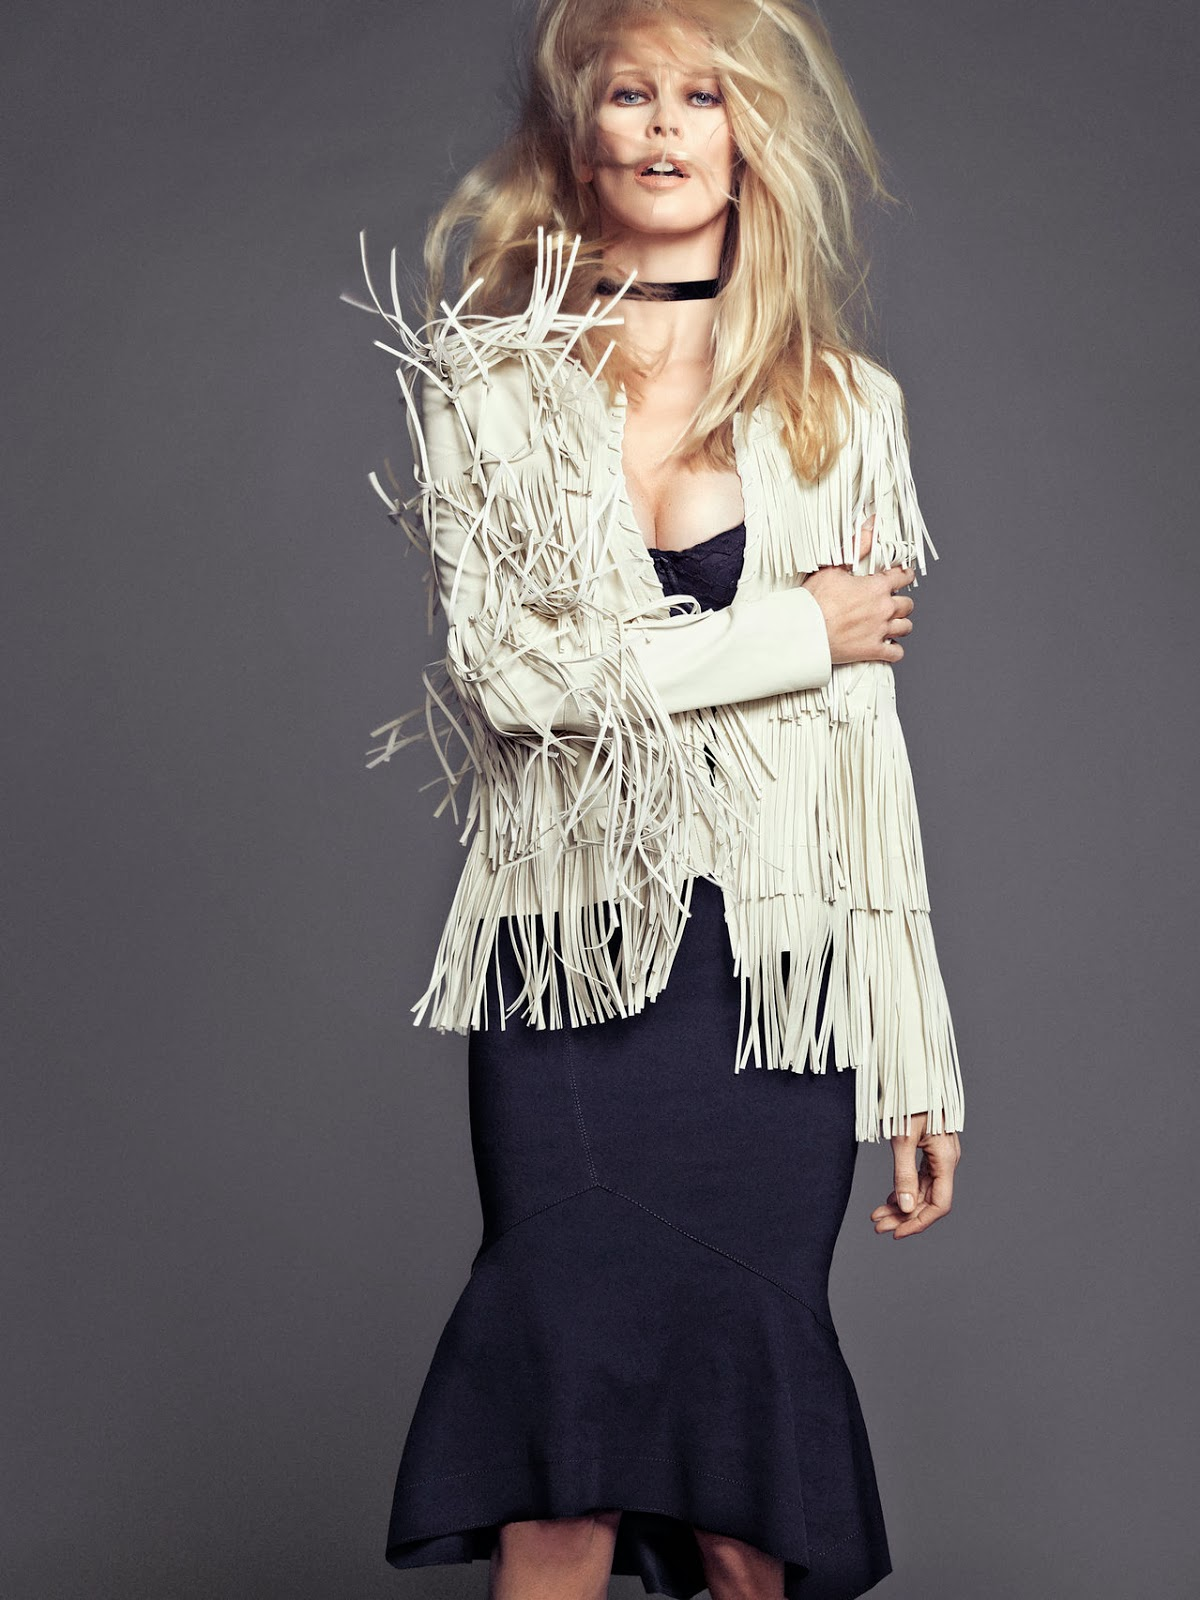 Claudia Schiffer HQ Pictures The Edit France Magzine Photoshoot Spring/summer 2014 By Nico